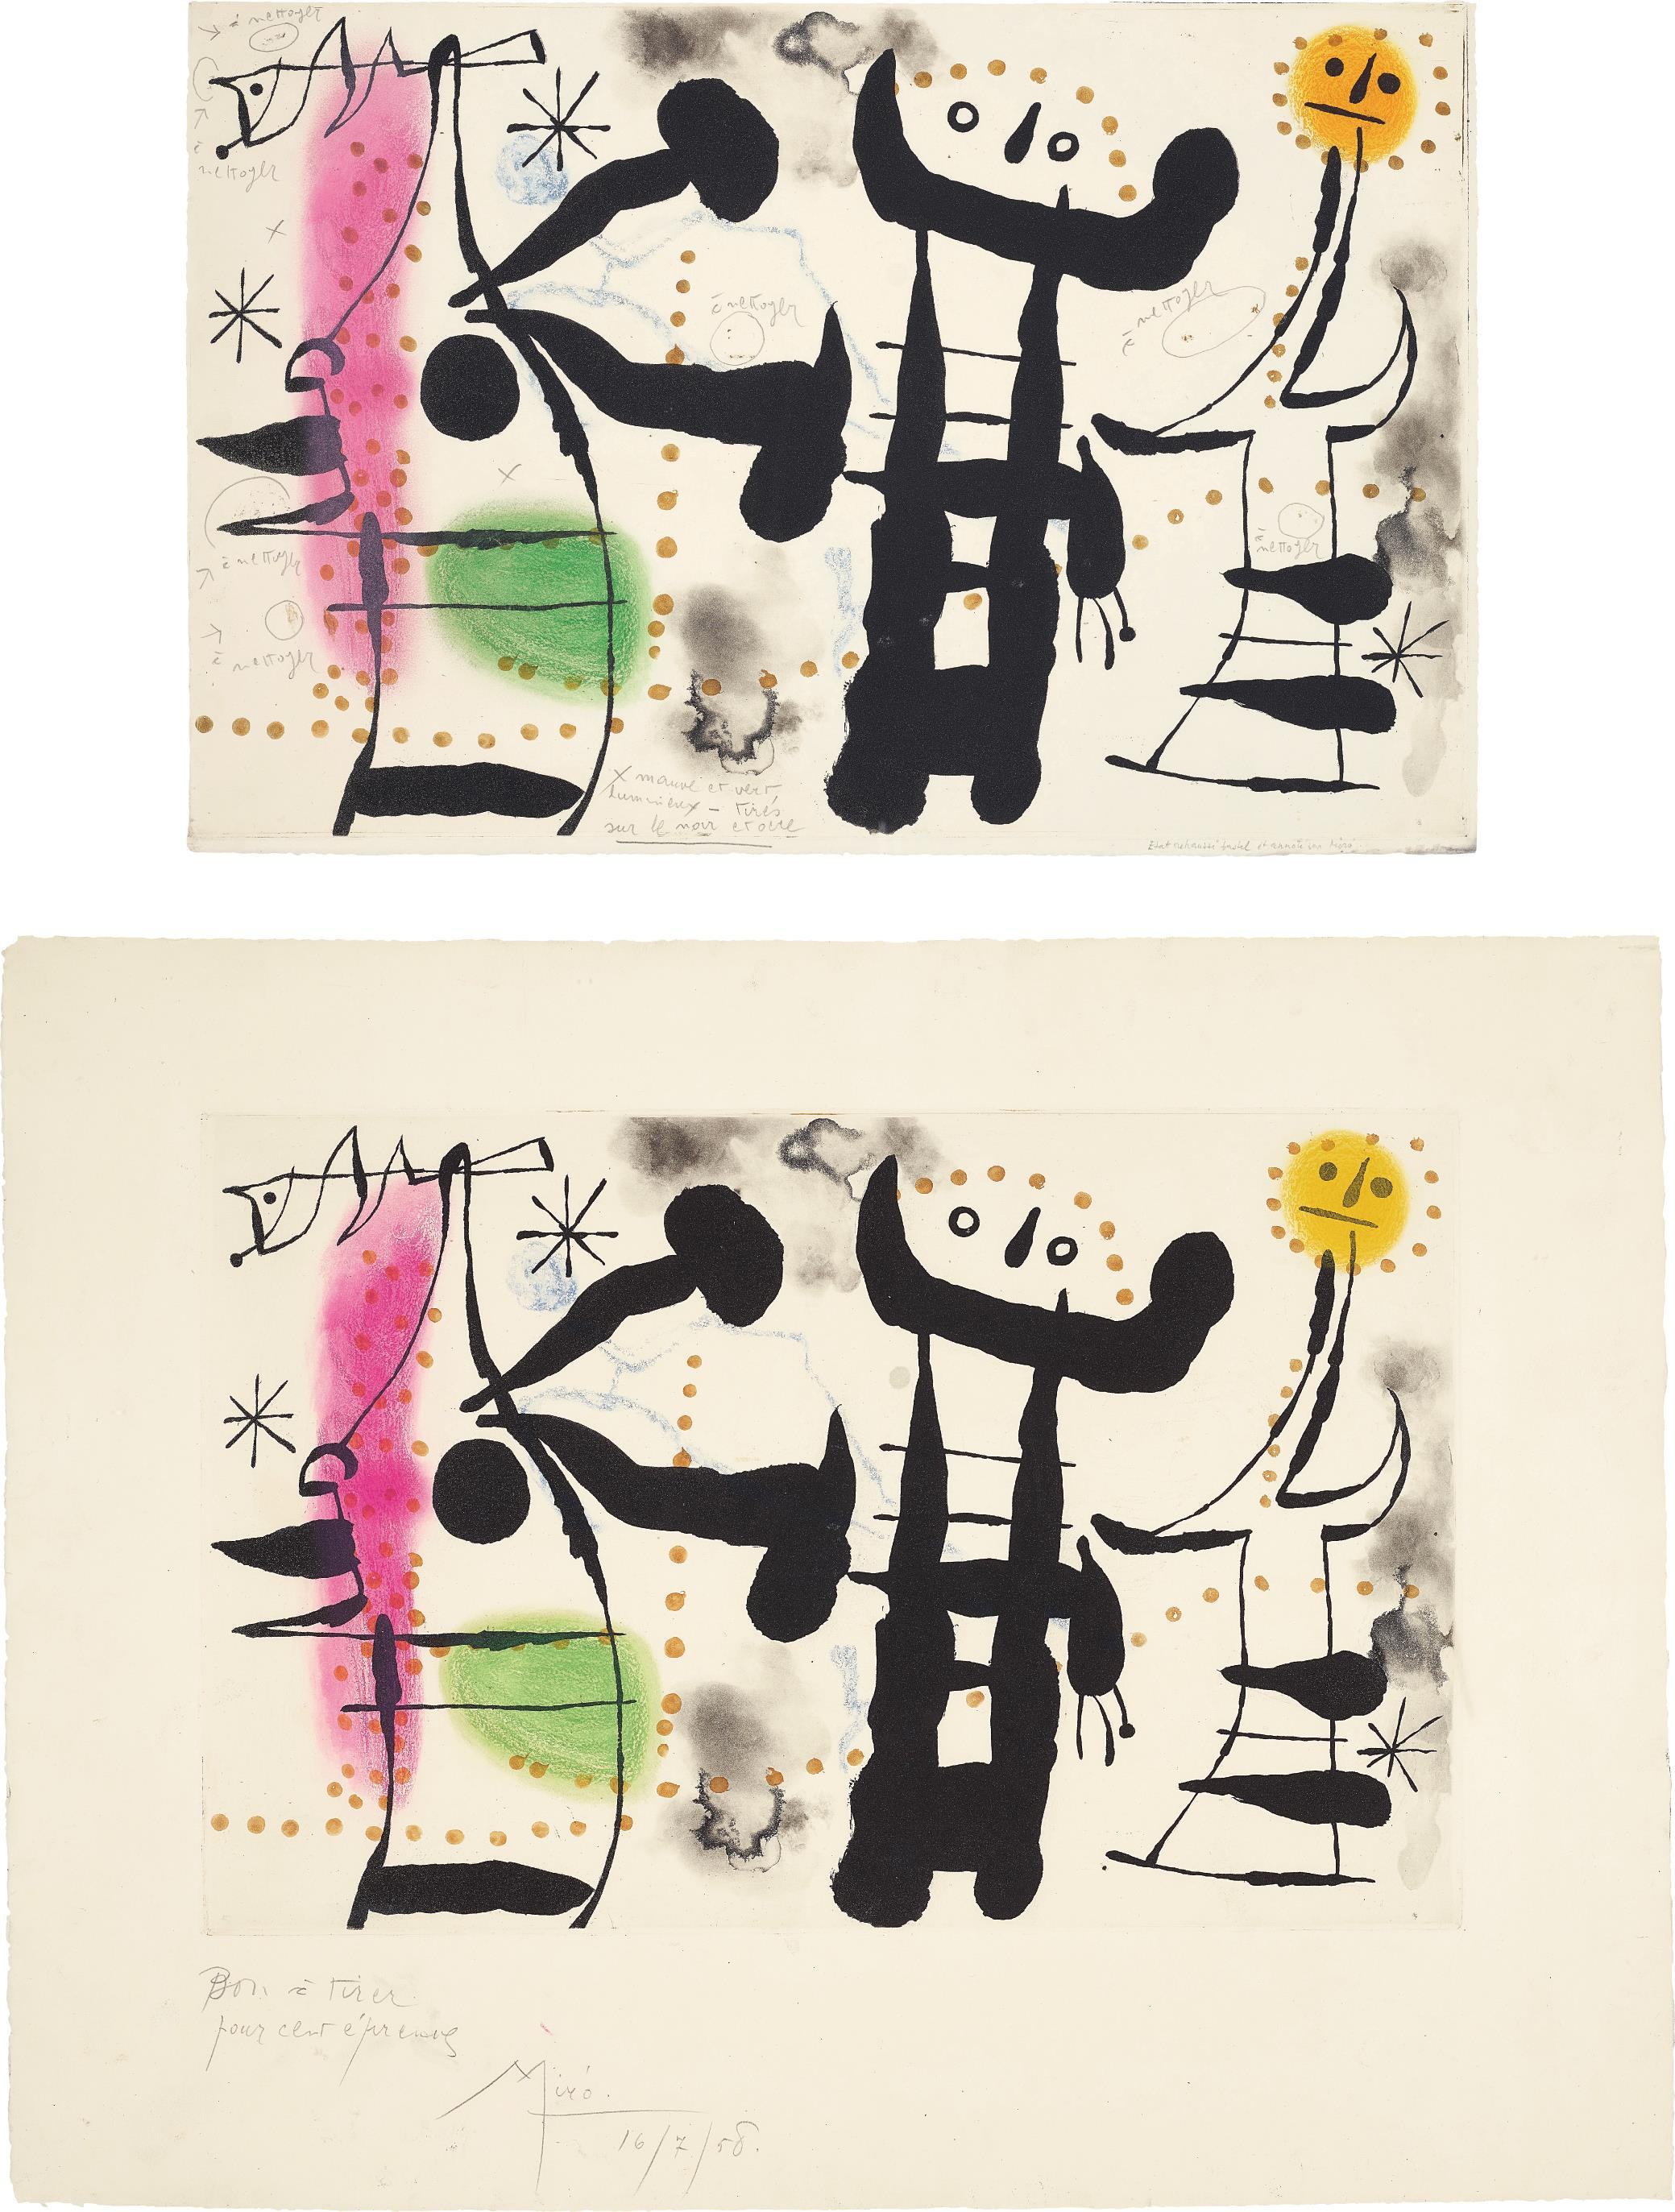 Joan Miro-Les Philosophes II (The Philosophers II): Two Impessions-1958